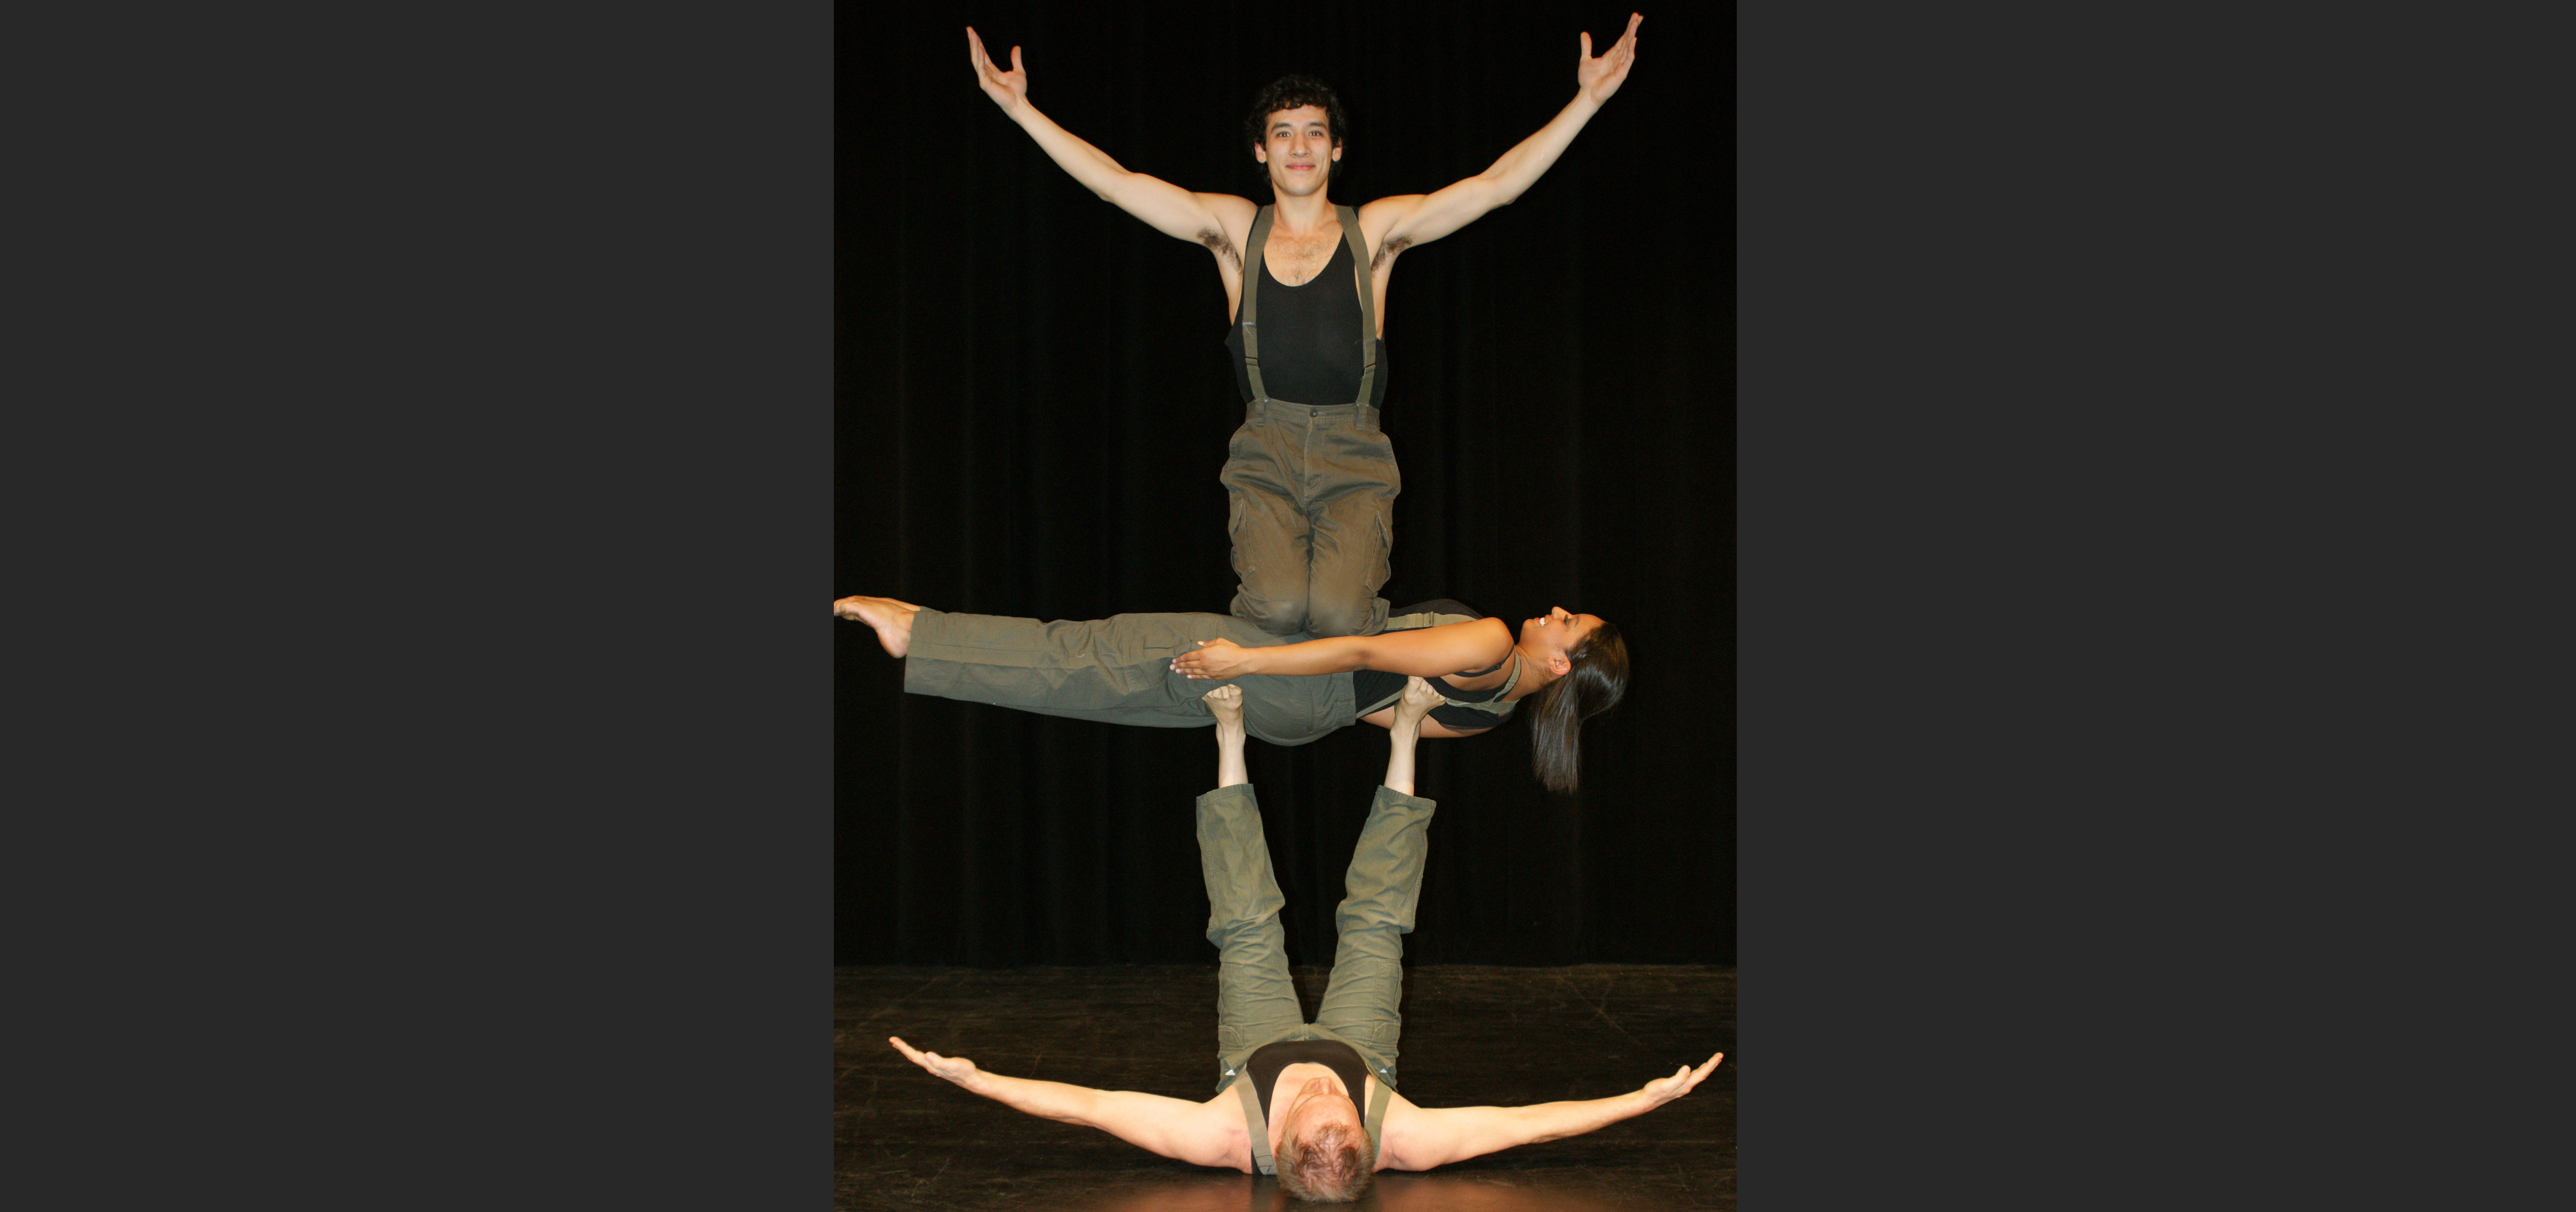 Daring Acrobatics Show Comes To Norwich